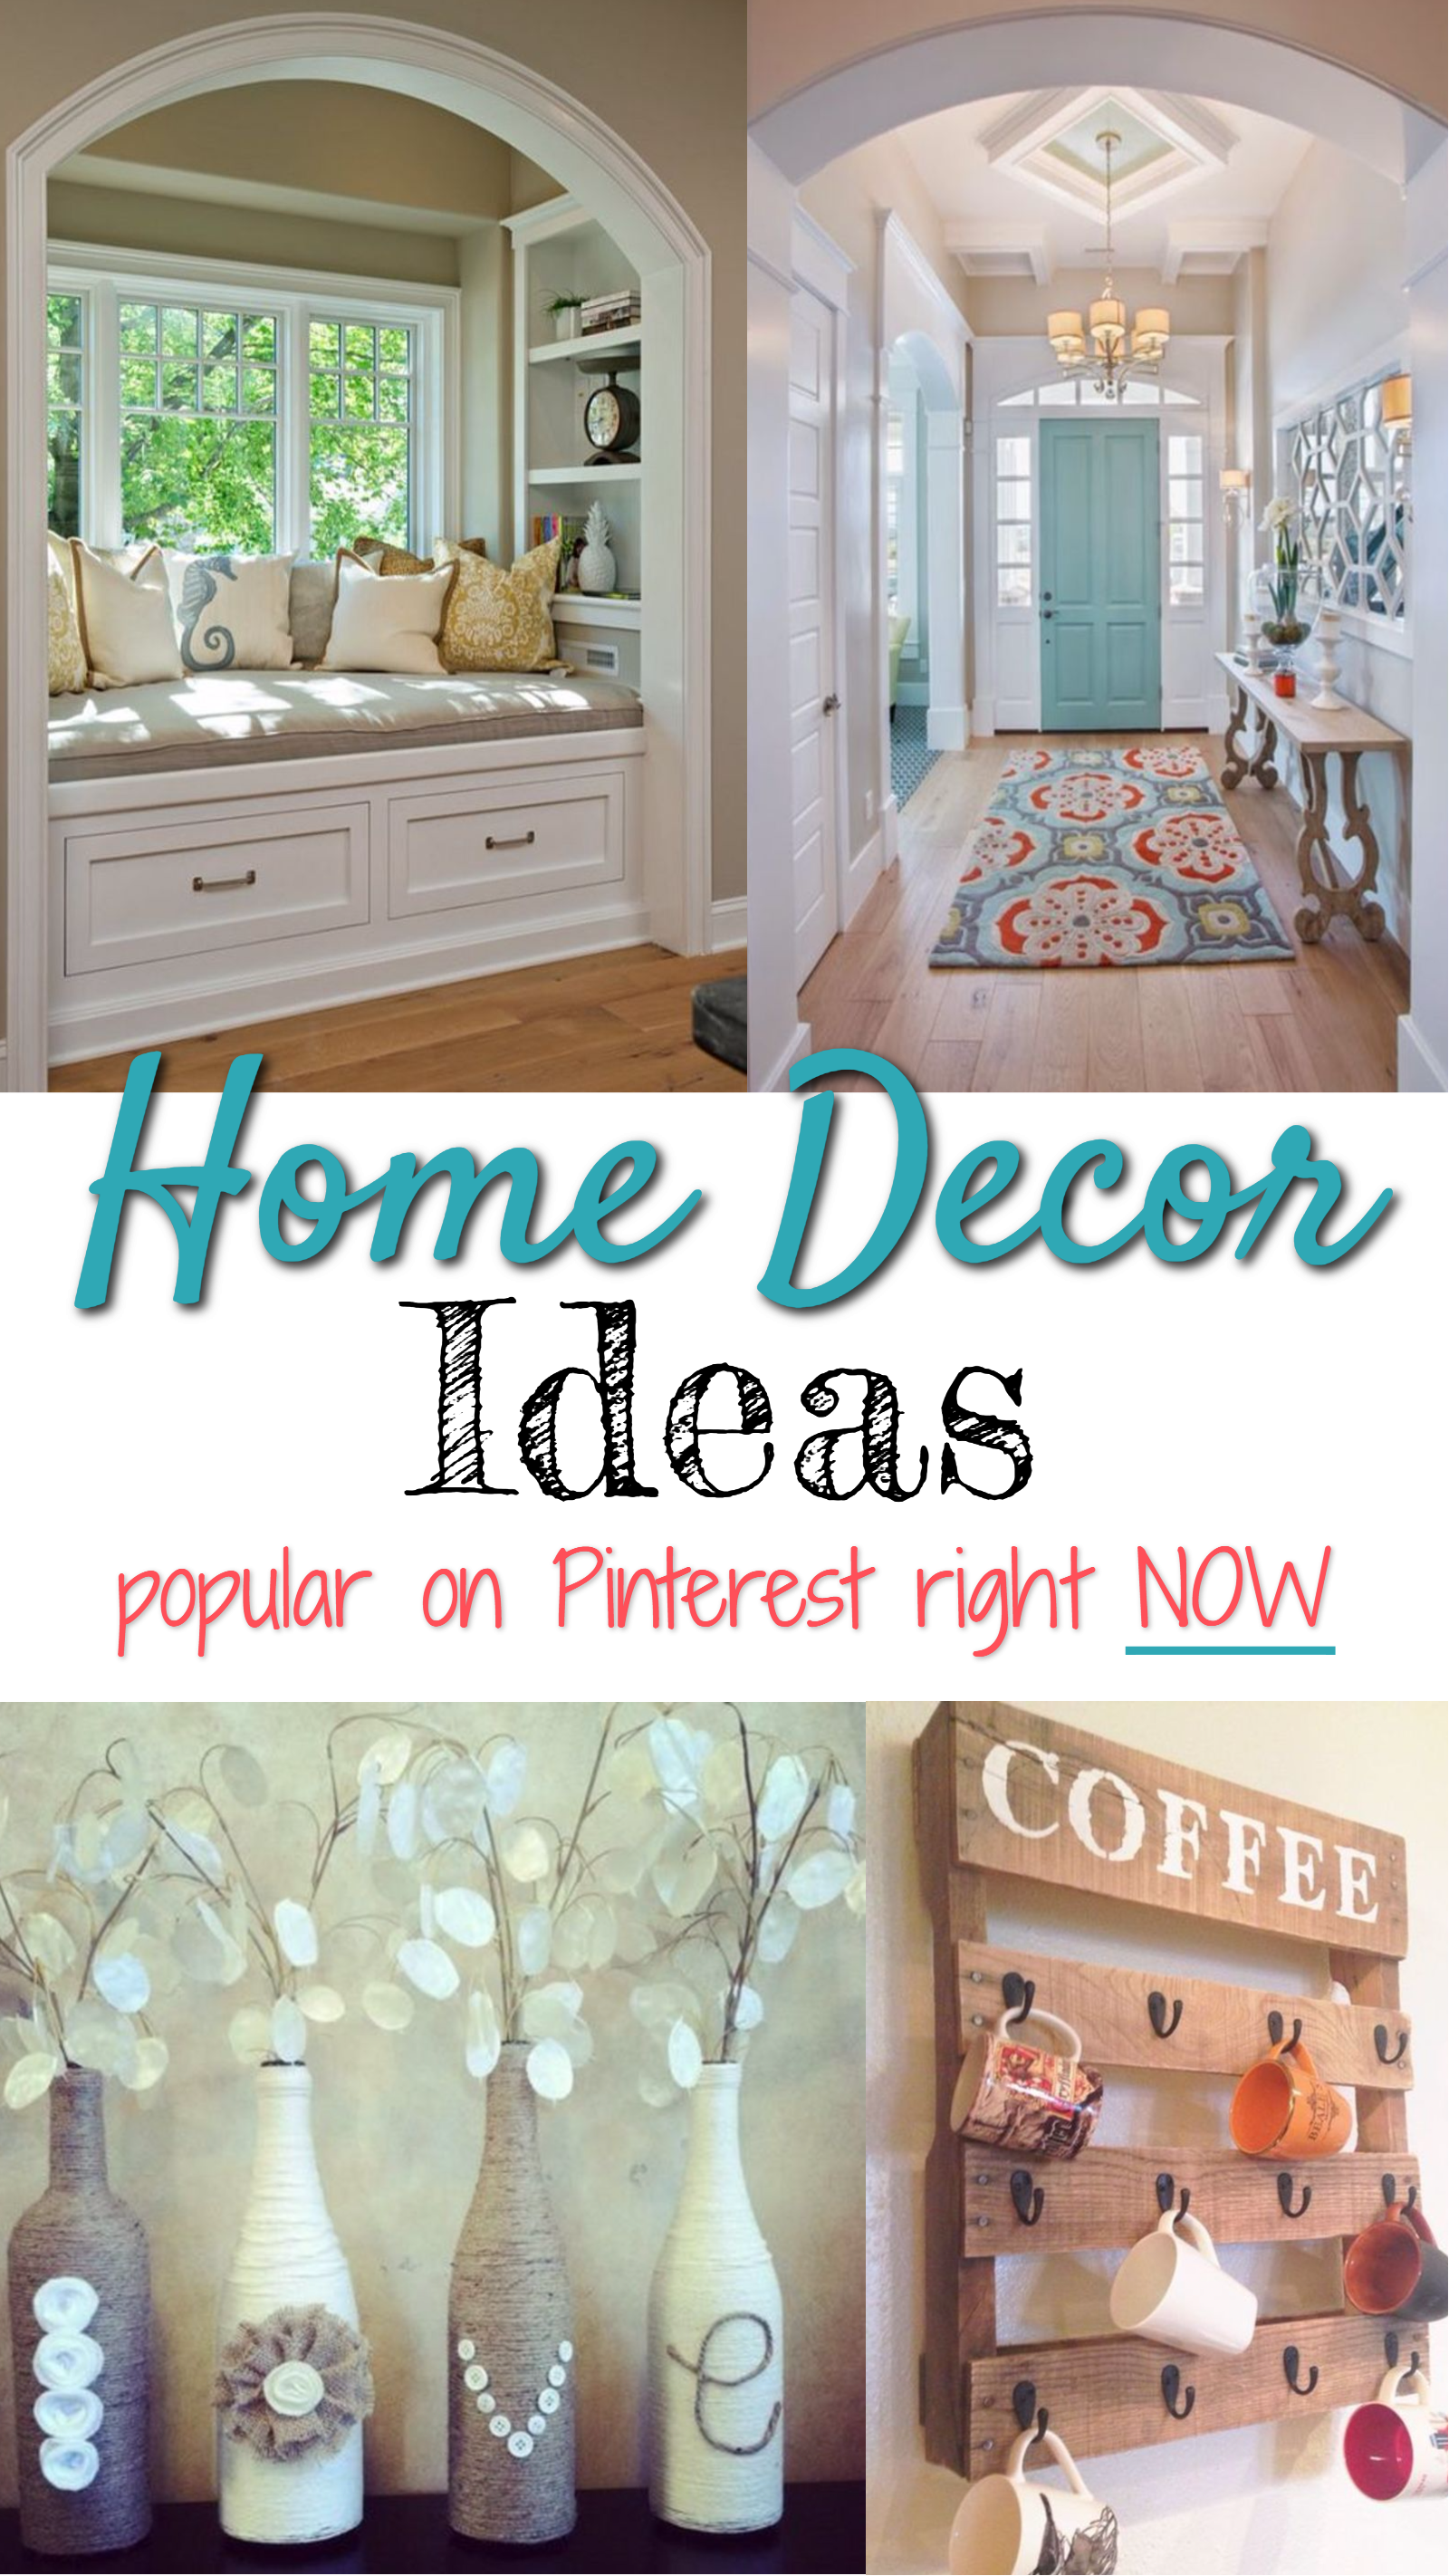 Trending And Viral Home Decor Pins On Pinterest Right NOW   Blog Post Ideas  From @